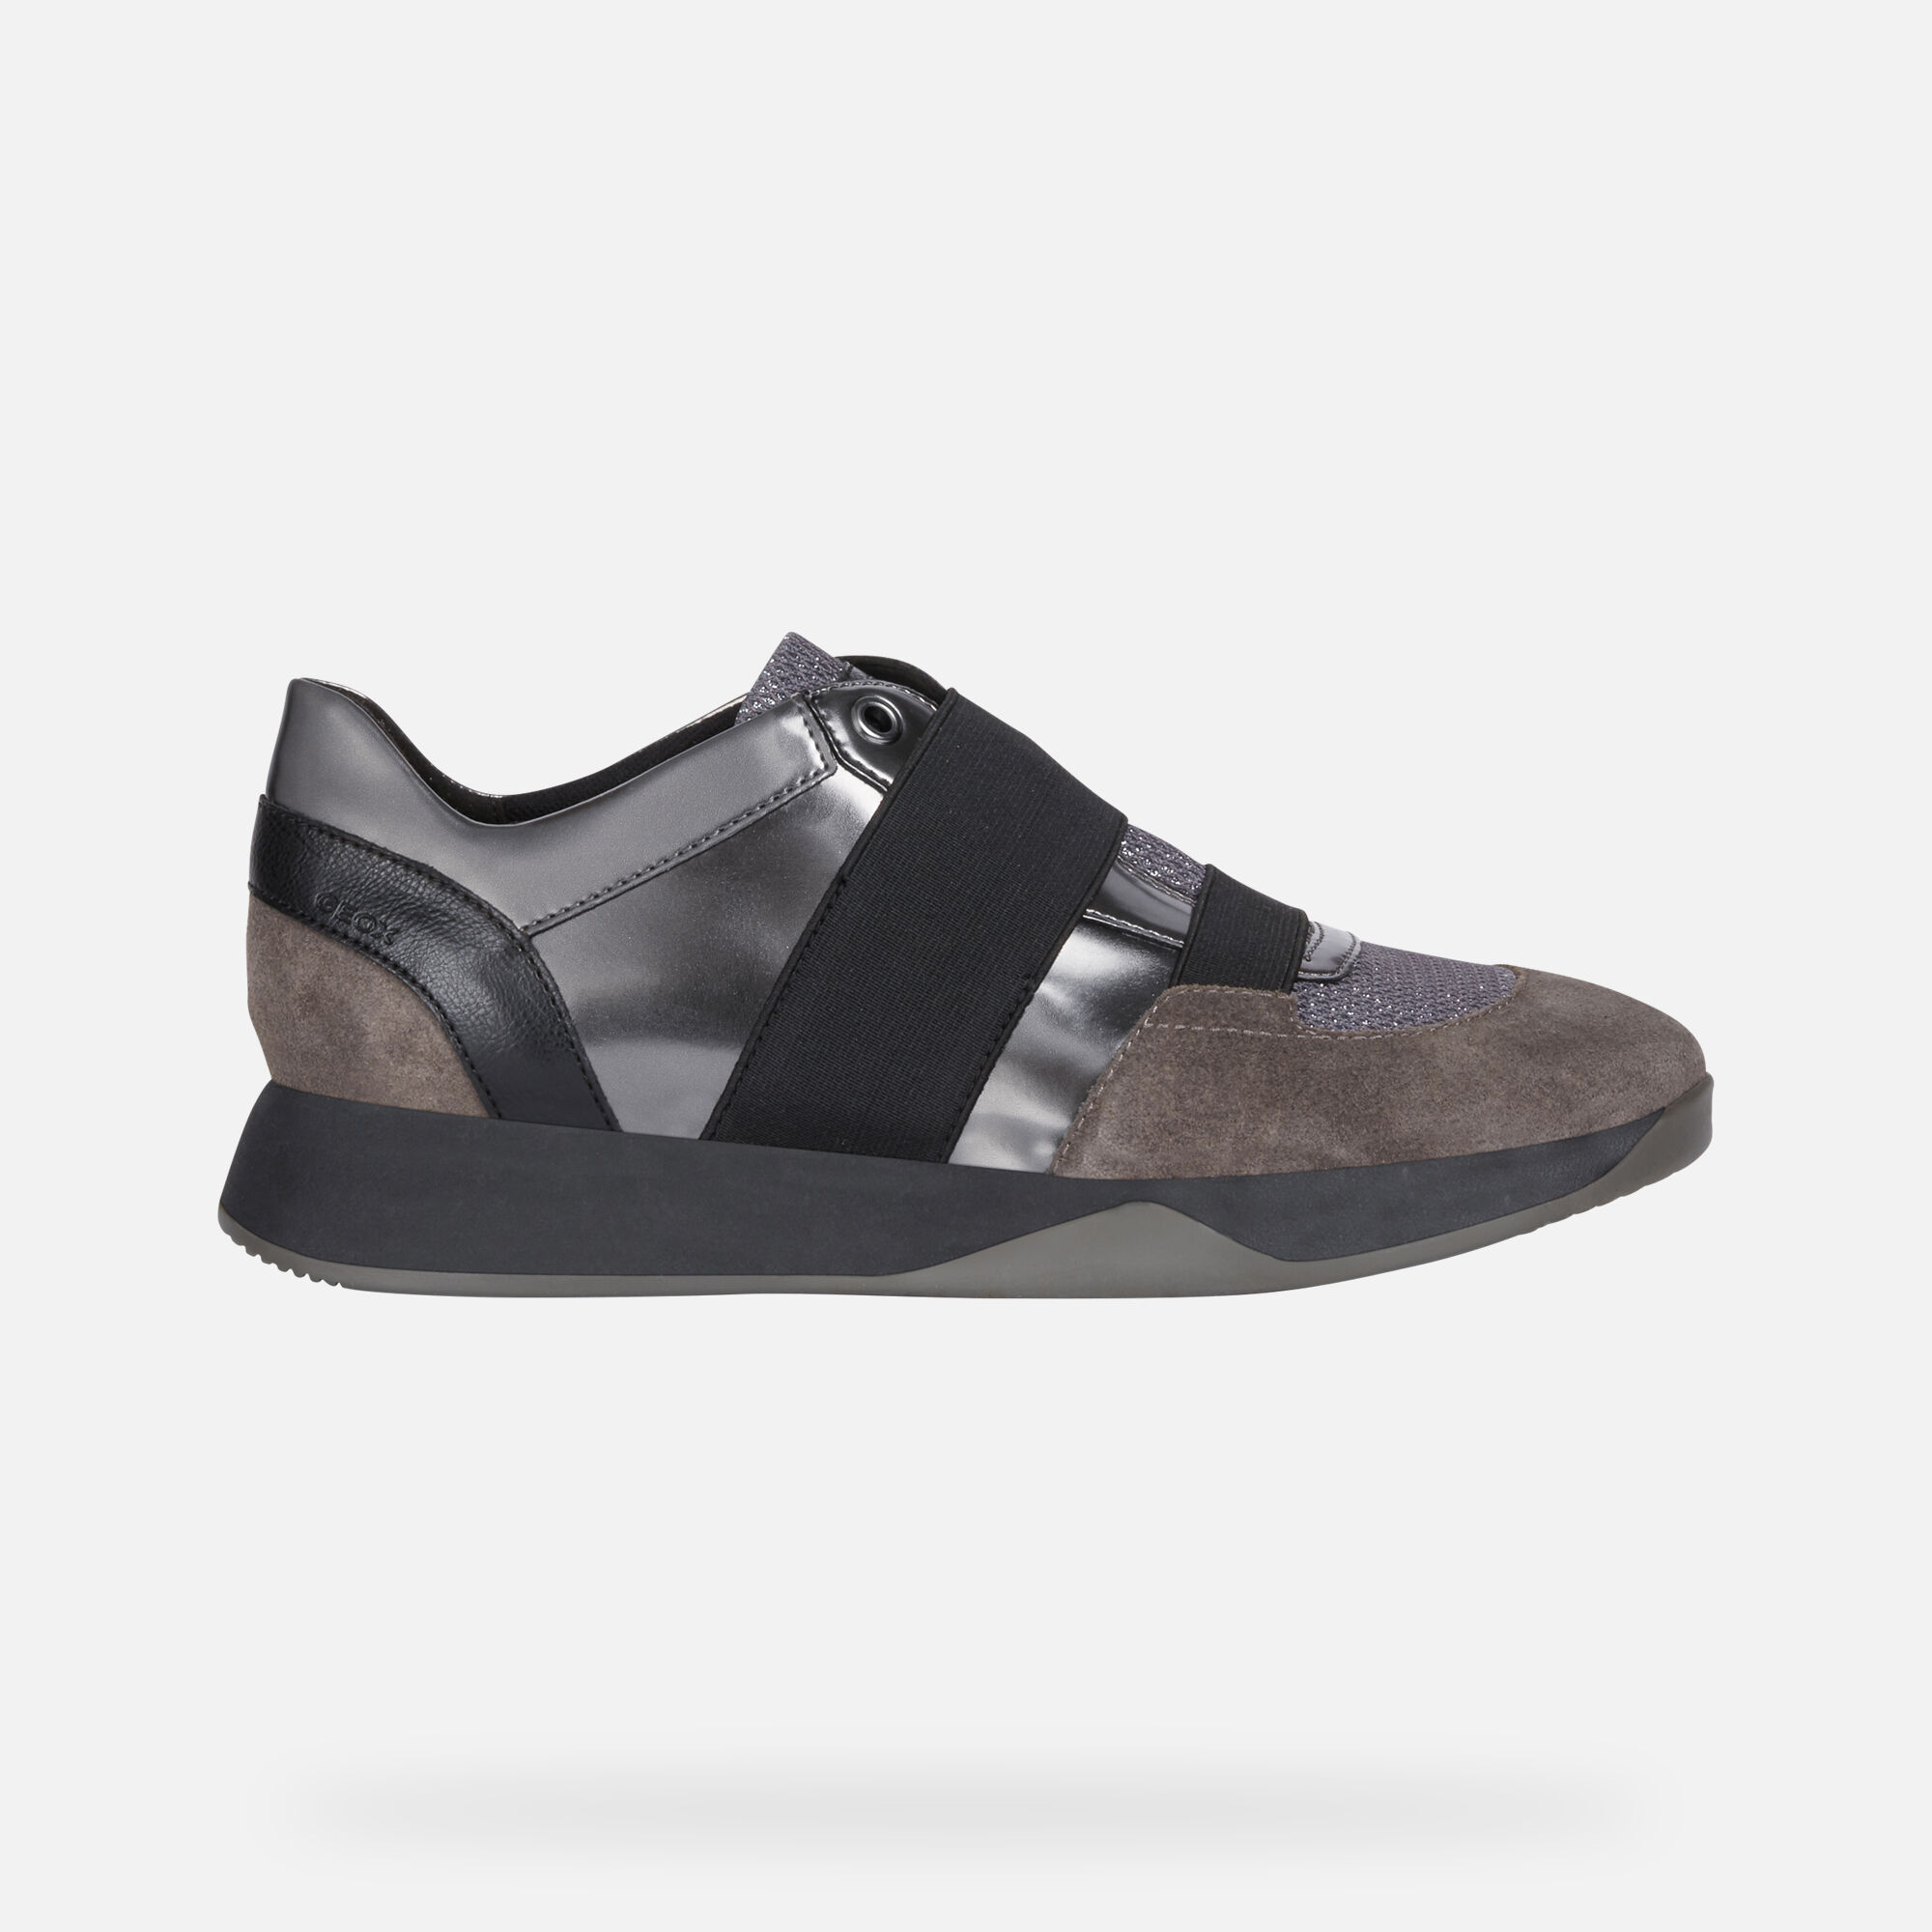 Geox SUZZIE Mujer: Sneakers Grises | Geox ®